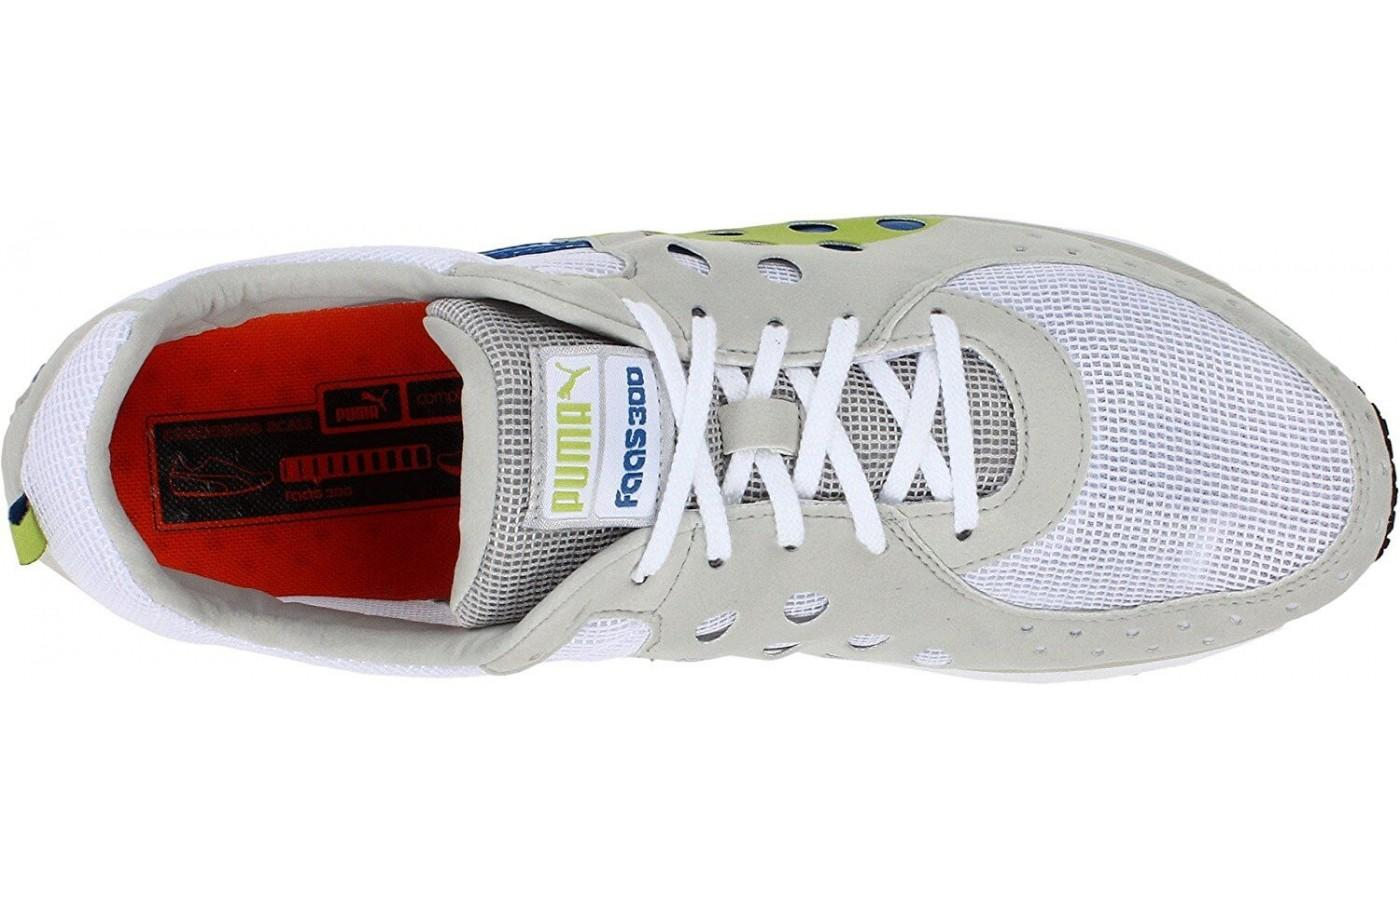 Here's a look at the breathable upper of the Faas 300